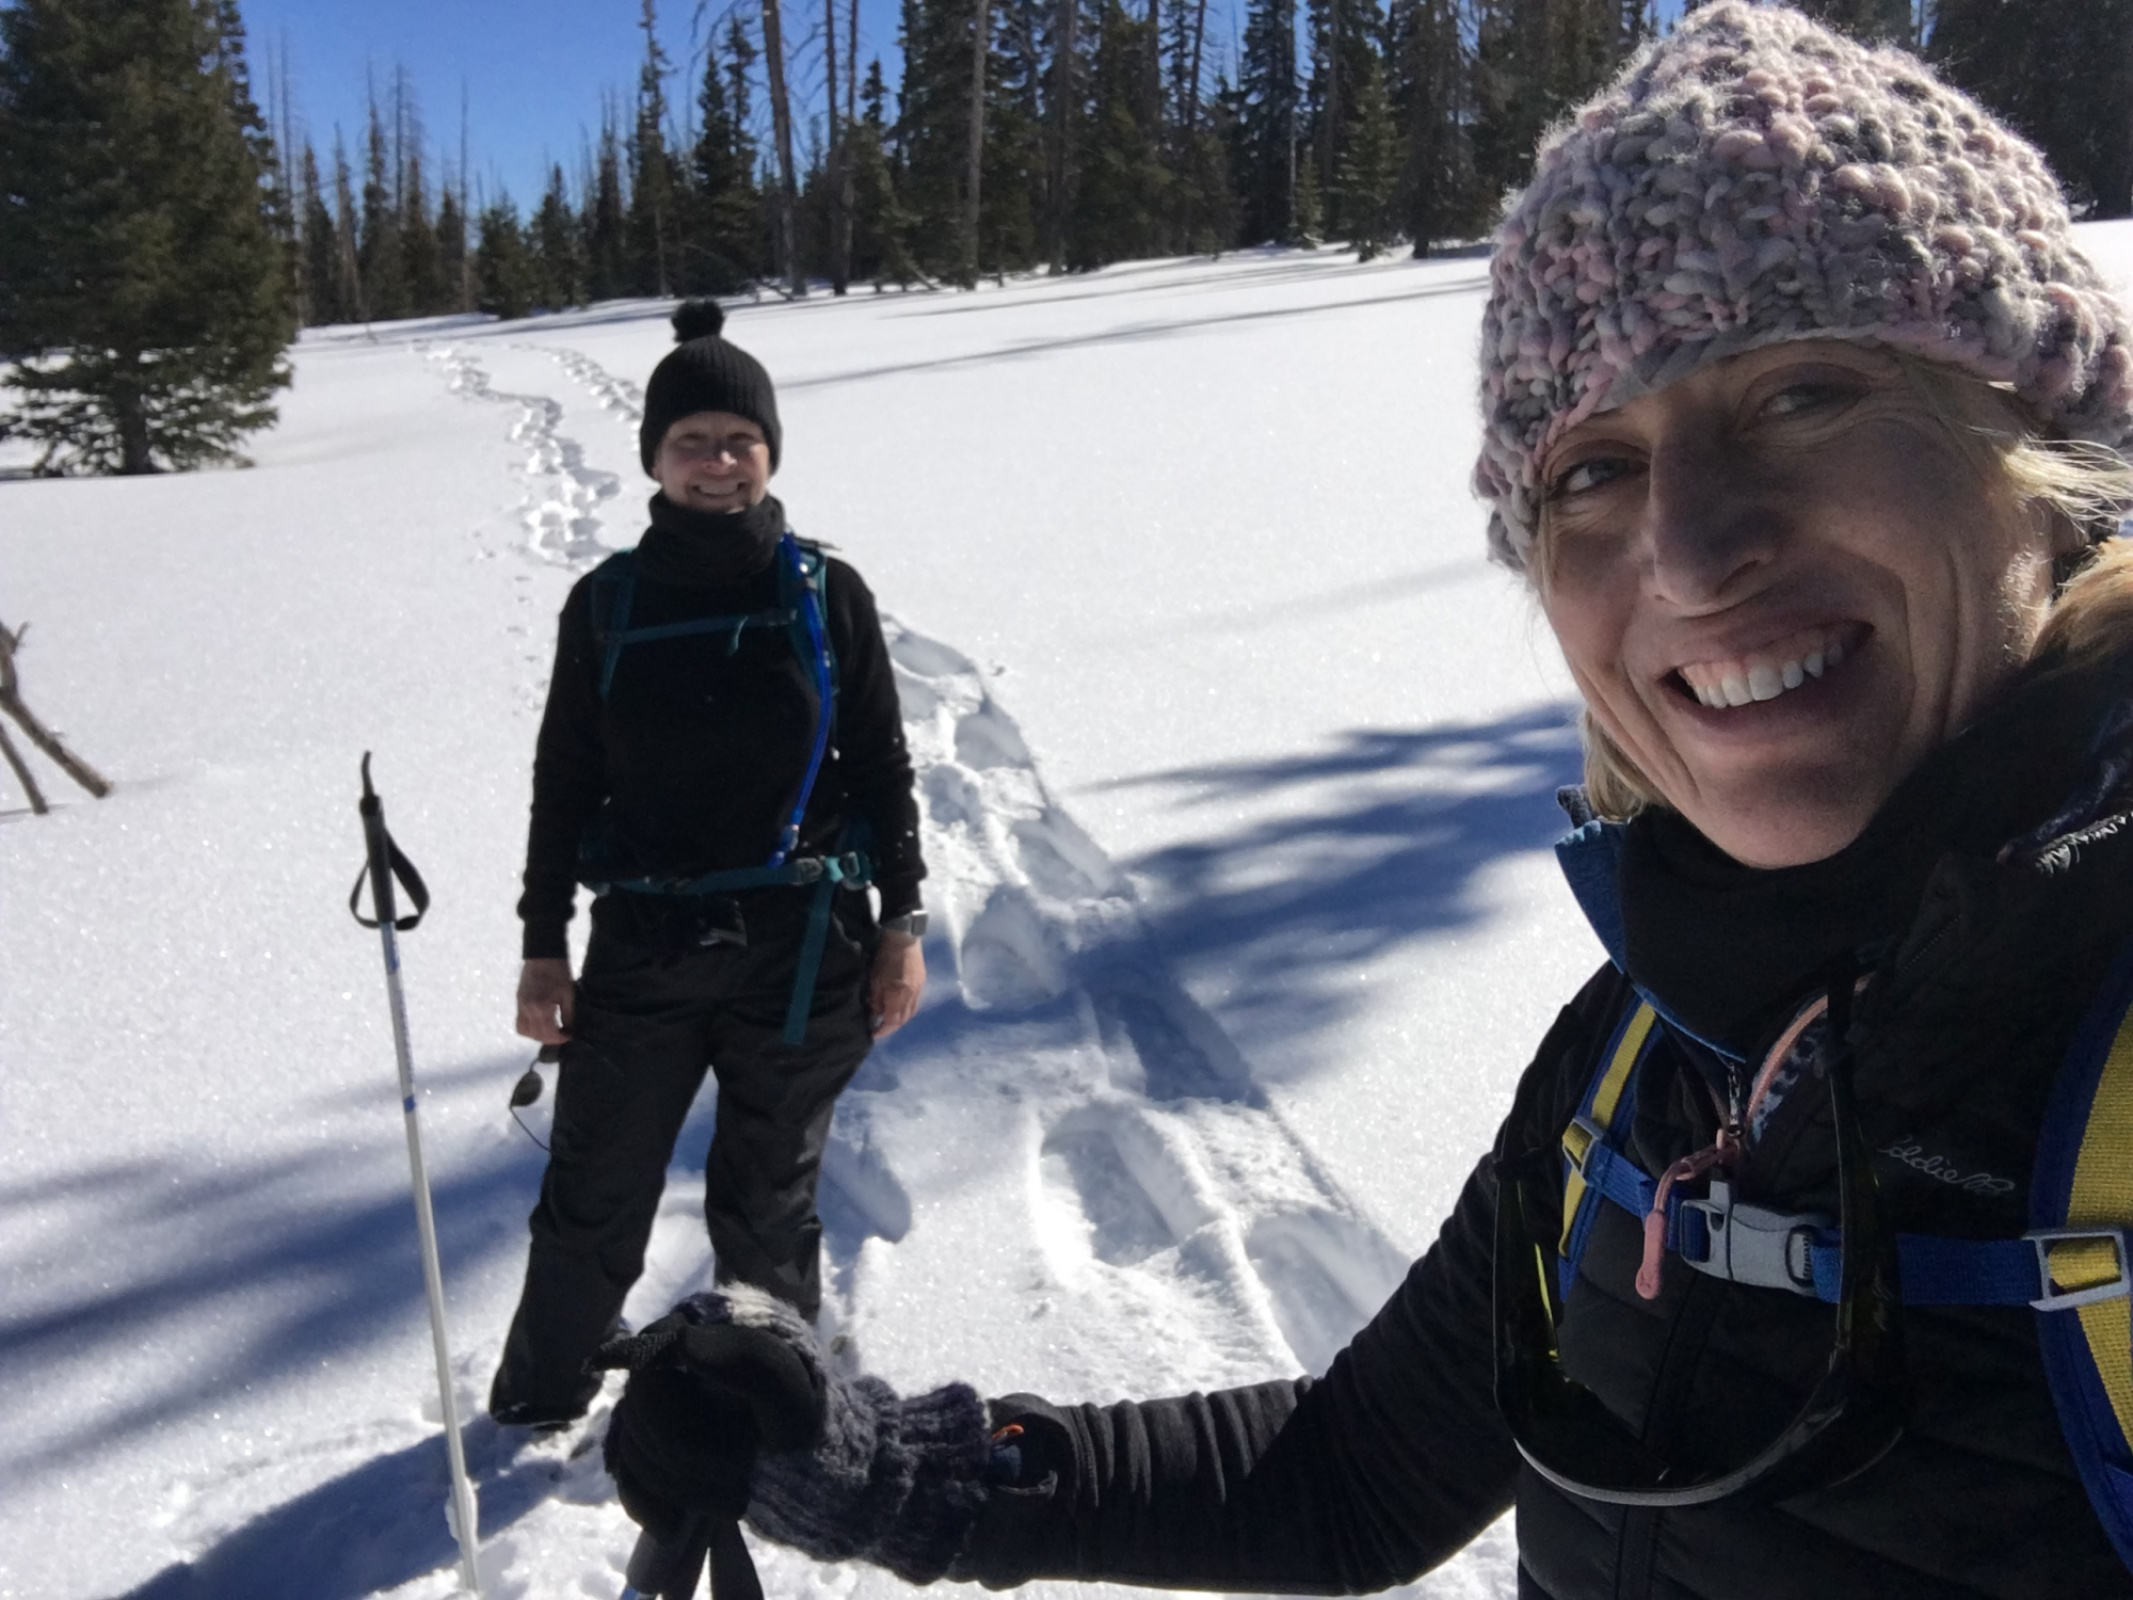 Snow shoeing in Brian Head, Utah